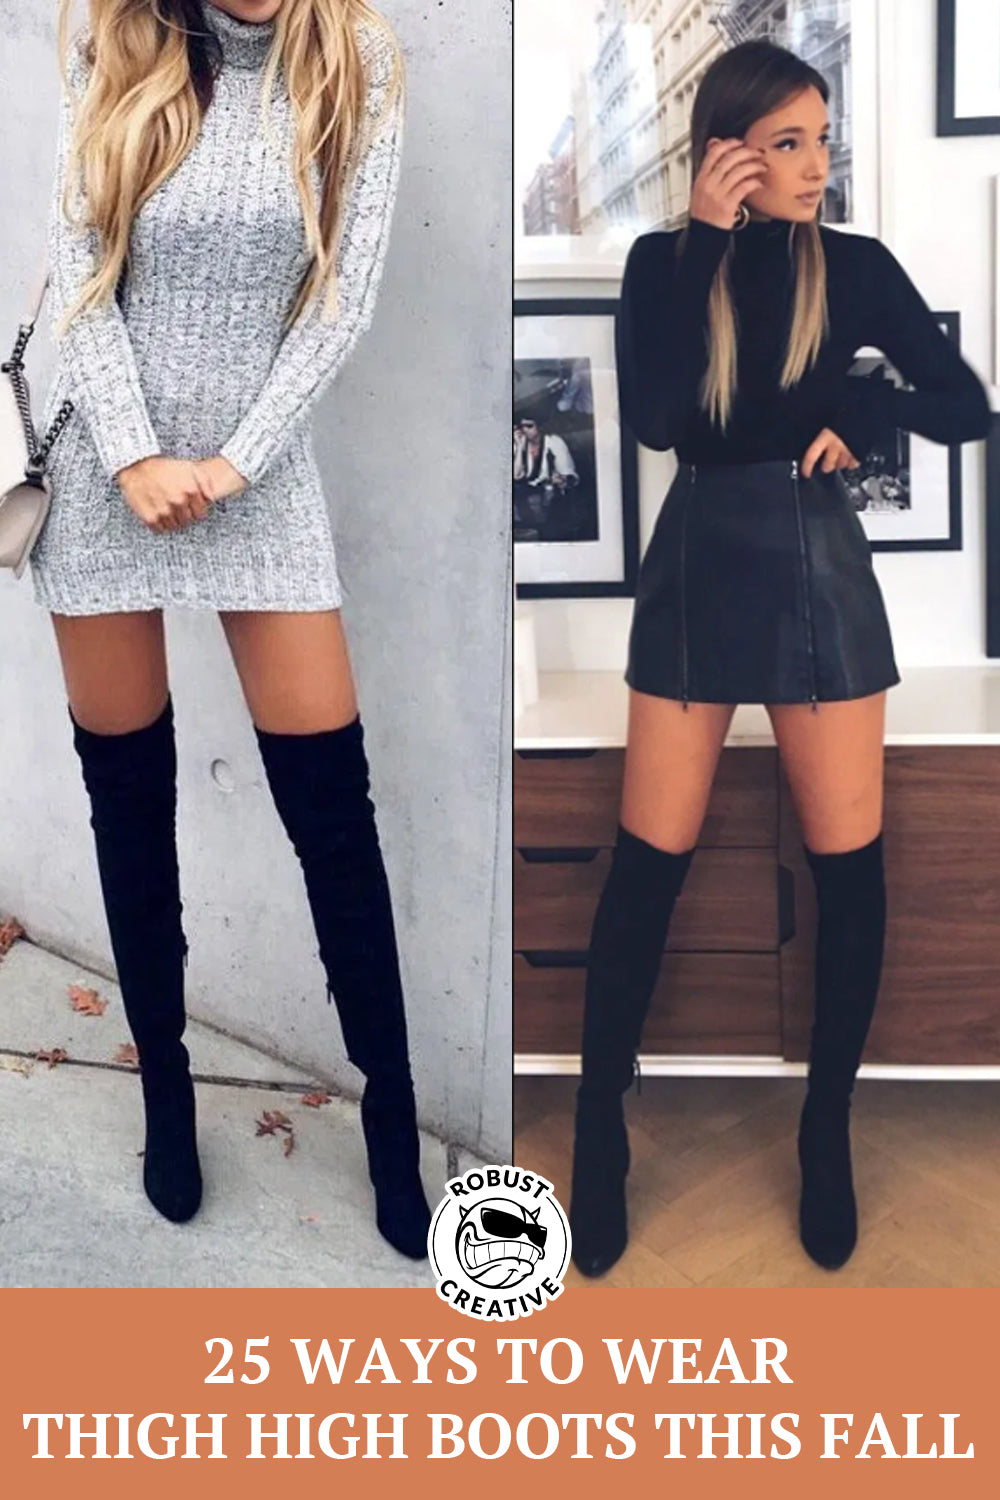 dress to go with knee high boots